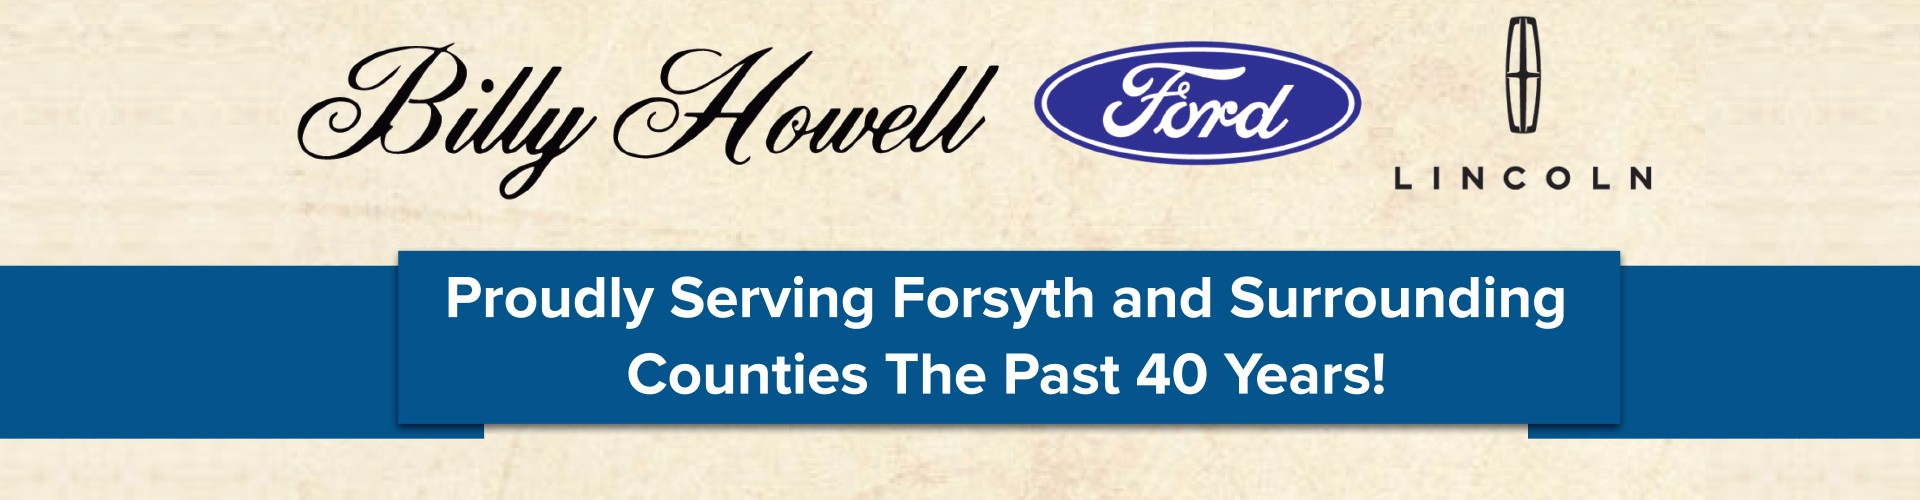 Billy Howell Ford for 40 Years